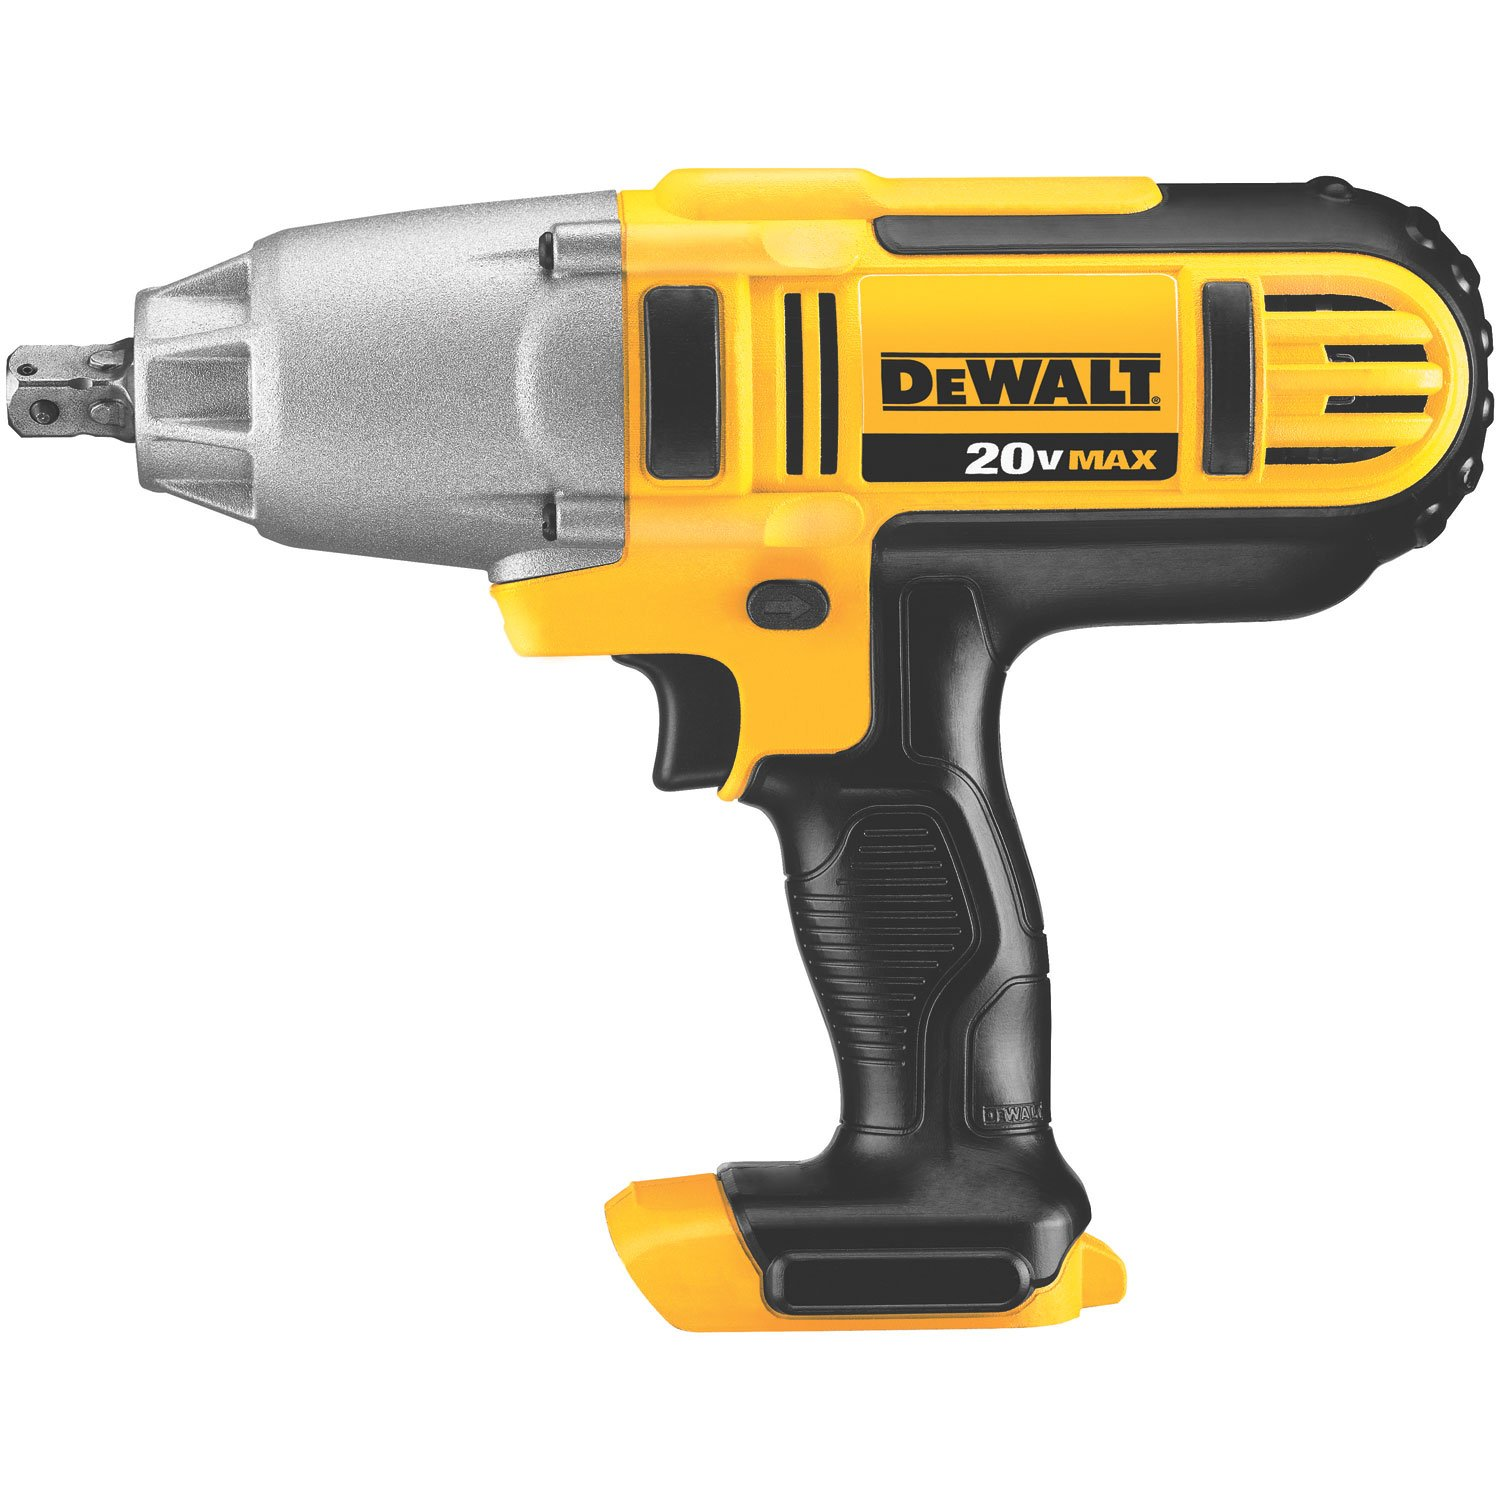 "DEWALT DCF889B 20V MAX Lithium Ion 1/2"" High Torque Impact Wrench (Tool Only)"